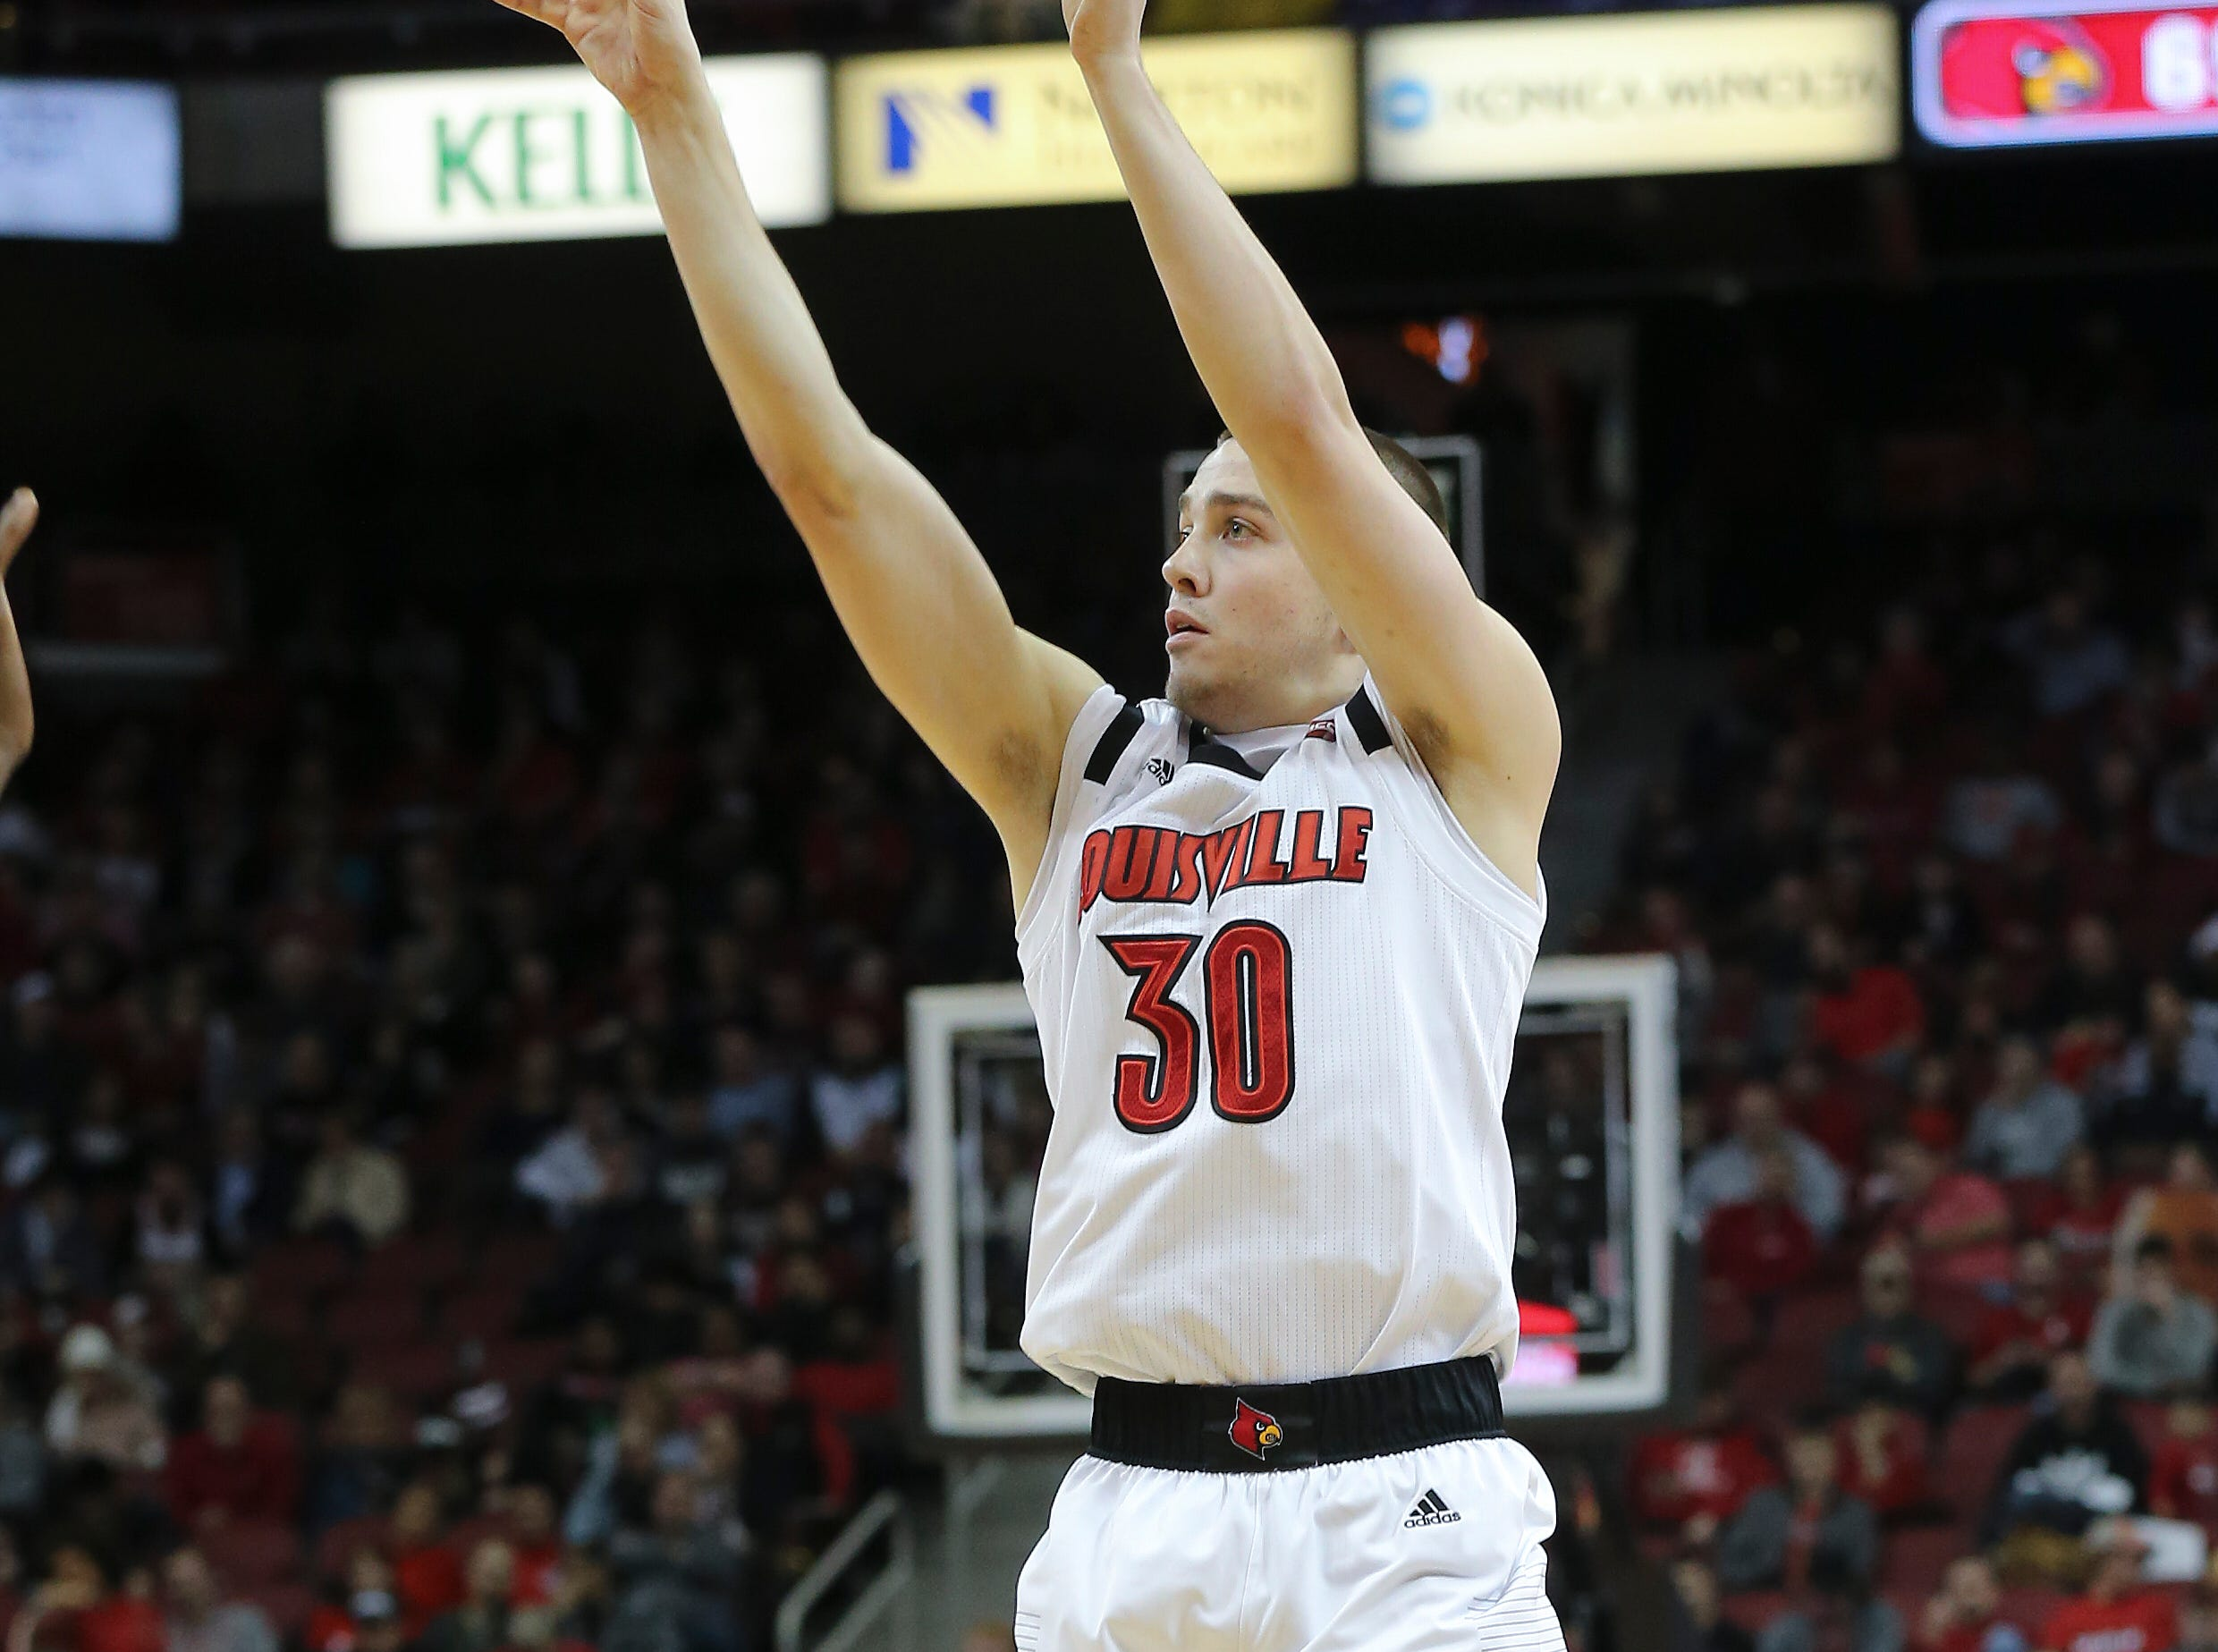 Louisville's Ryan McMahon (30) shoots against Central Arkansas during their game at the Yum Center.  